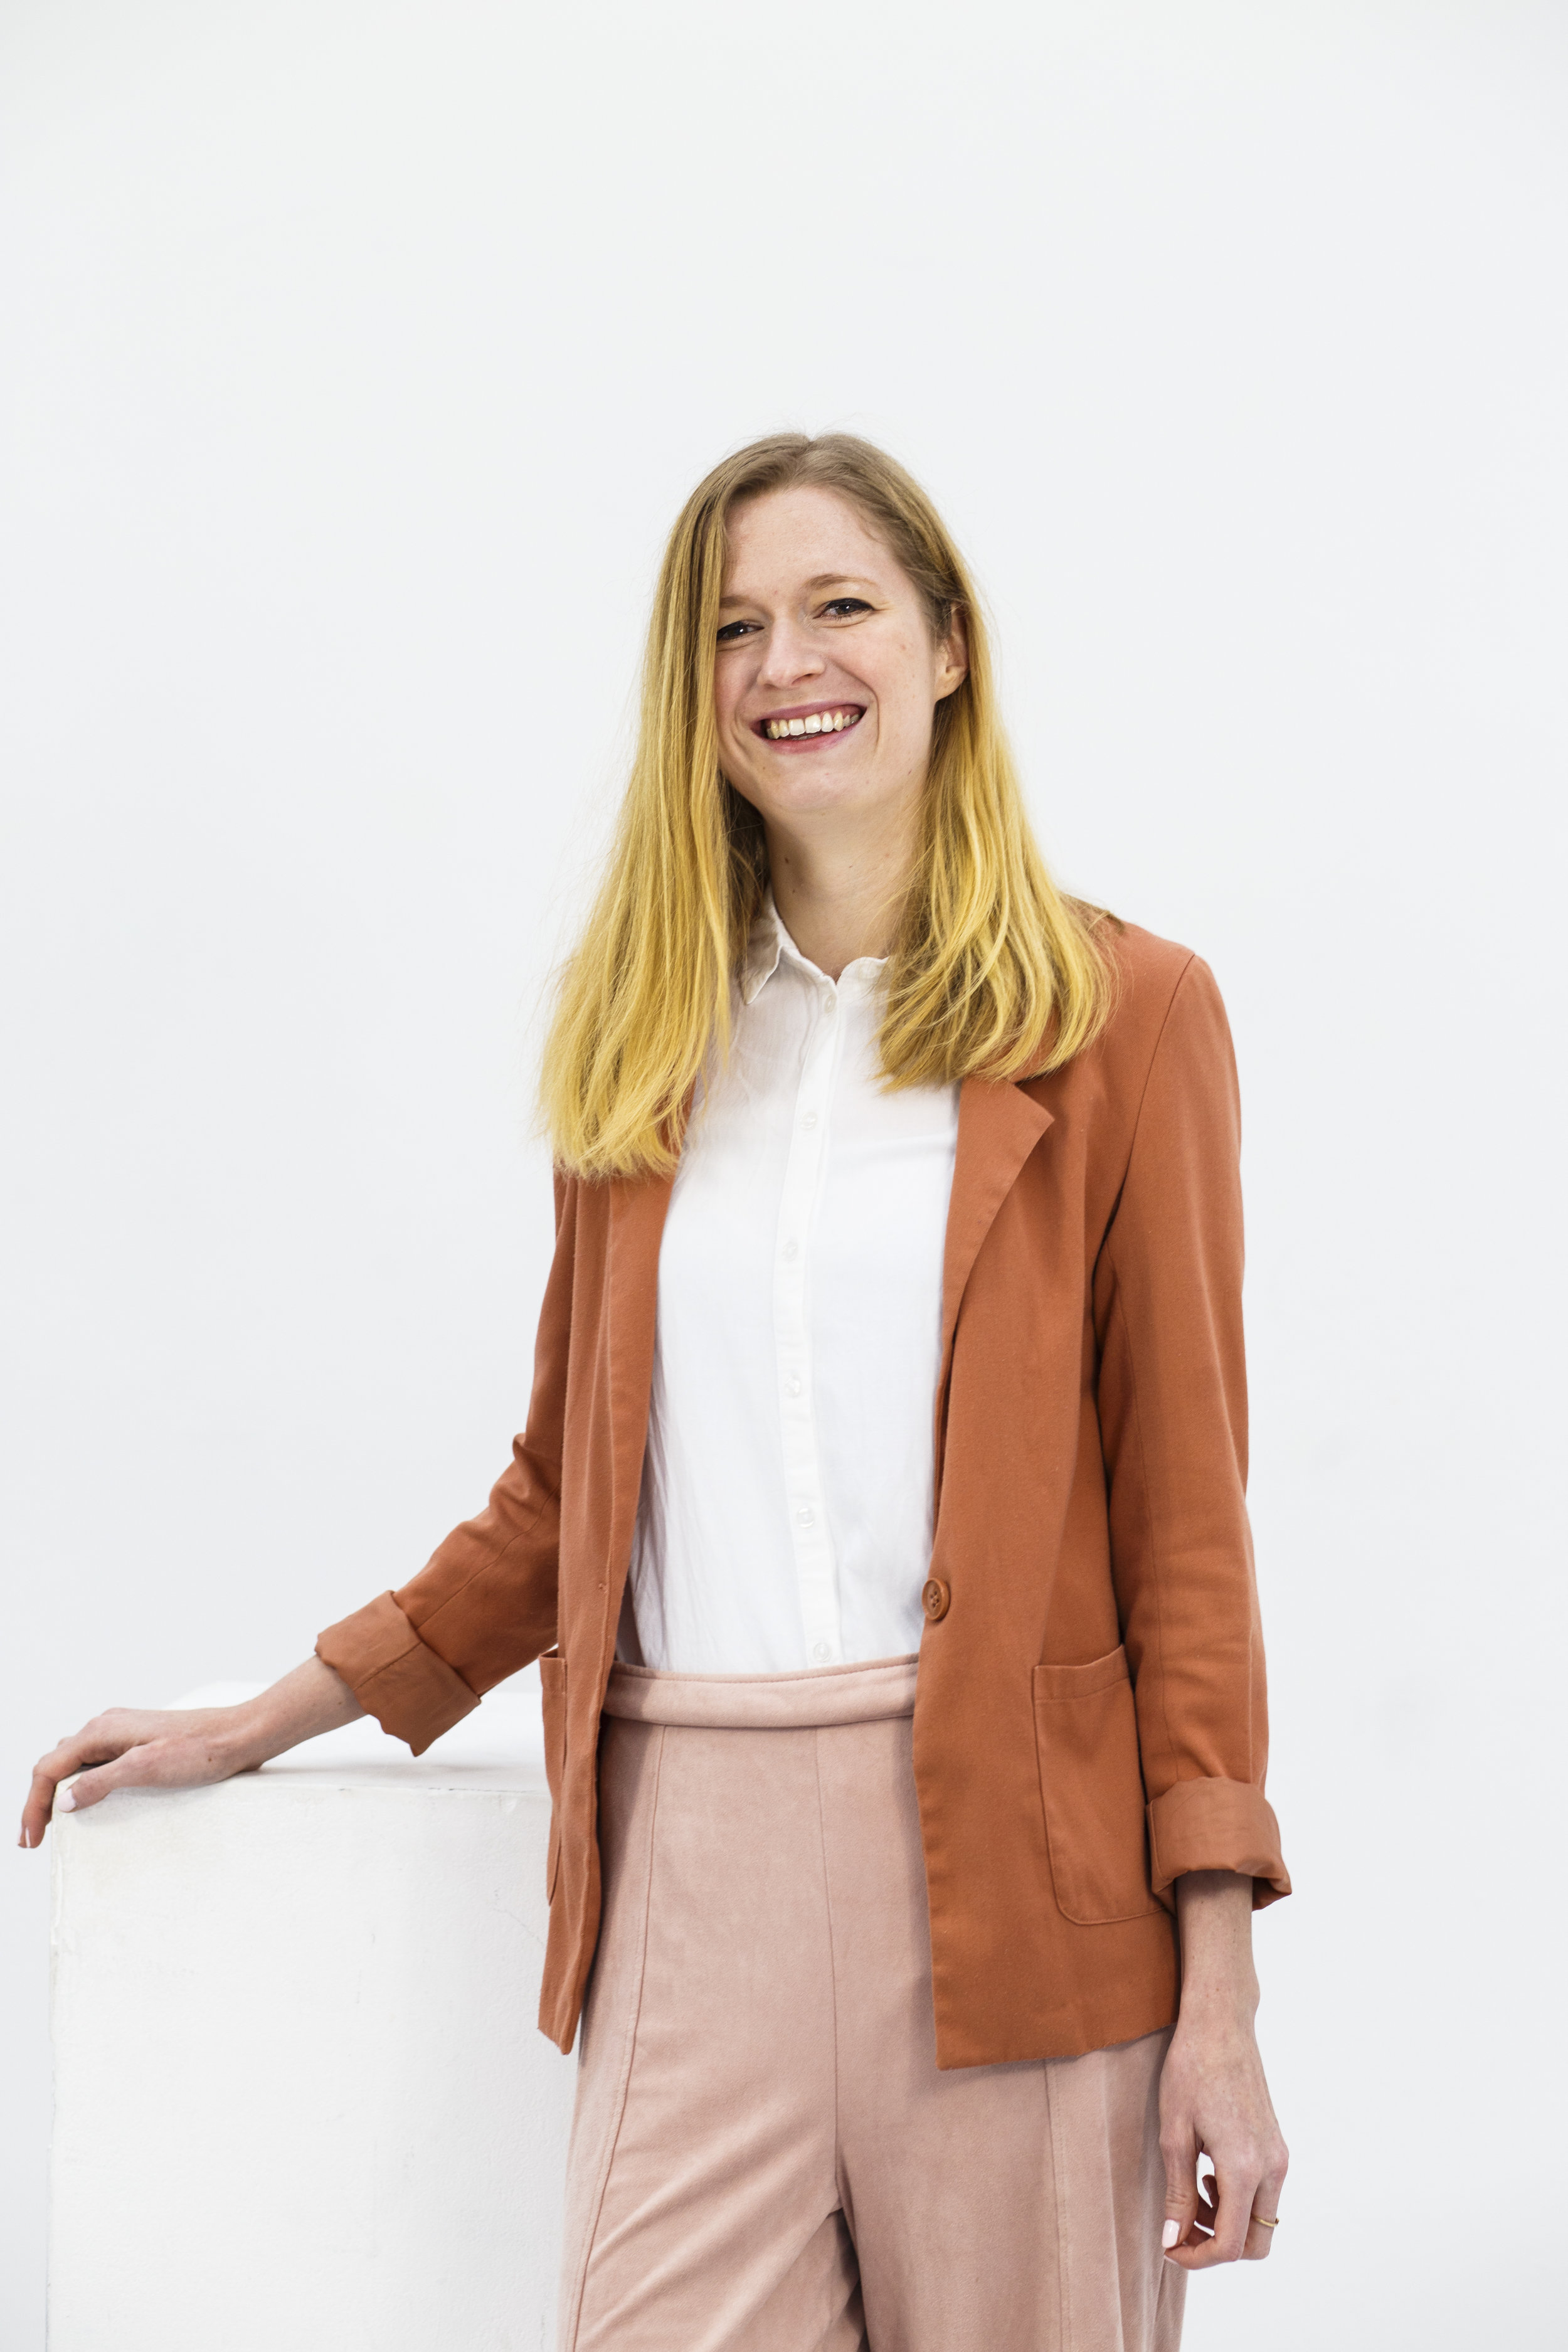 Linda Roos - Linda is a copywriter with a mind full of sharp insights and an unsatisfiable curiousity. She writes on her blog www.lindaroosenmedia.nl, as well as for DeOndernemer.nl, a website specifically for Dutch entrepreneurs.Photo: Carly Wollaert